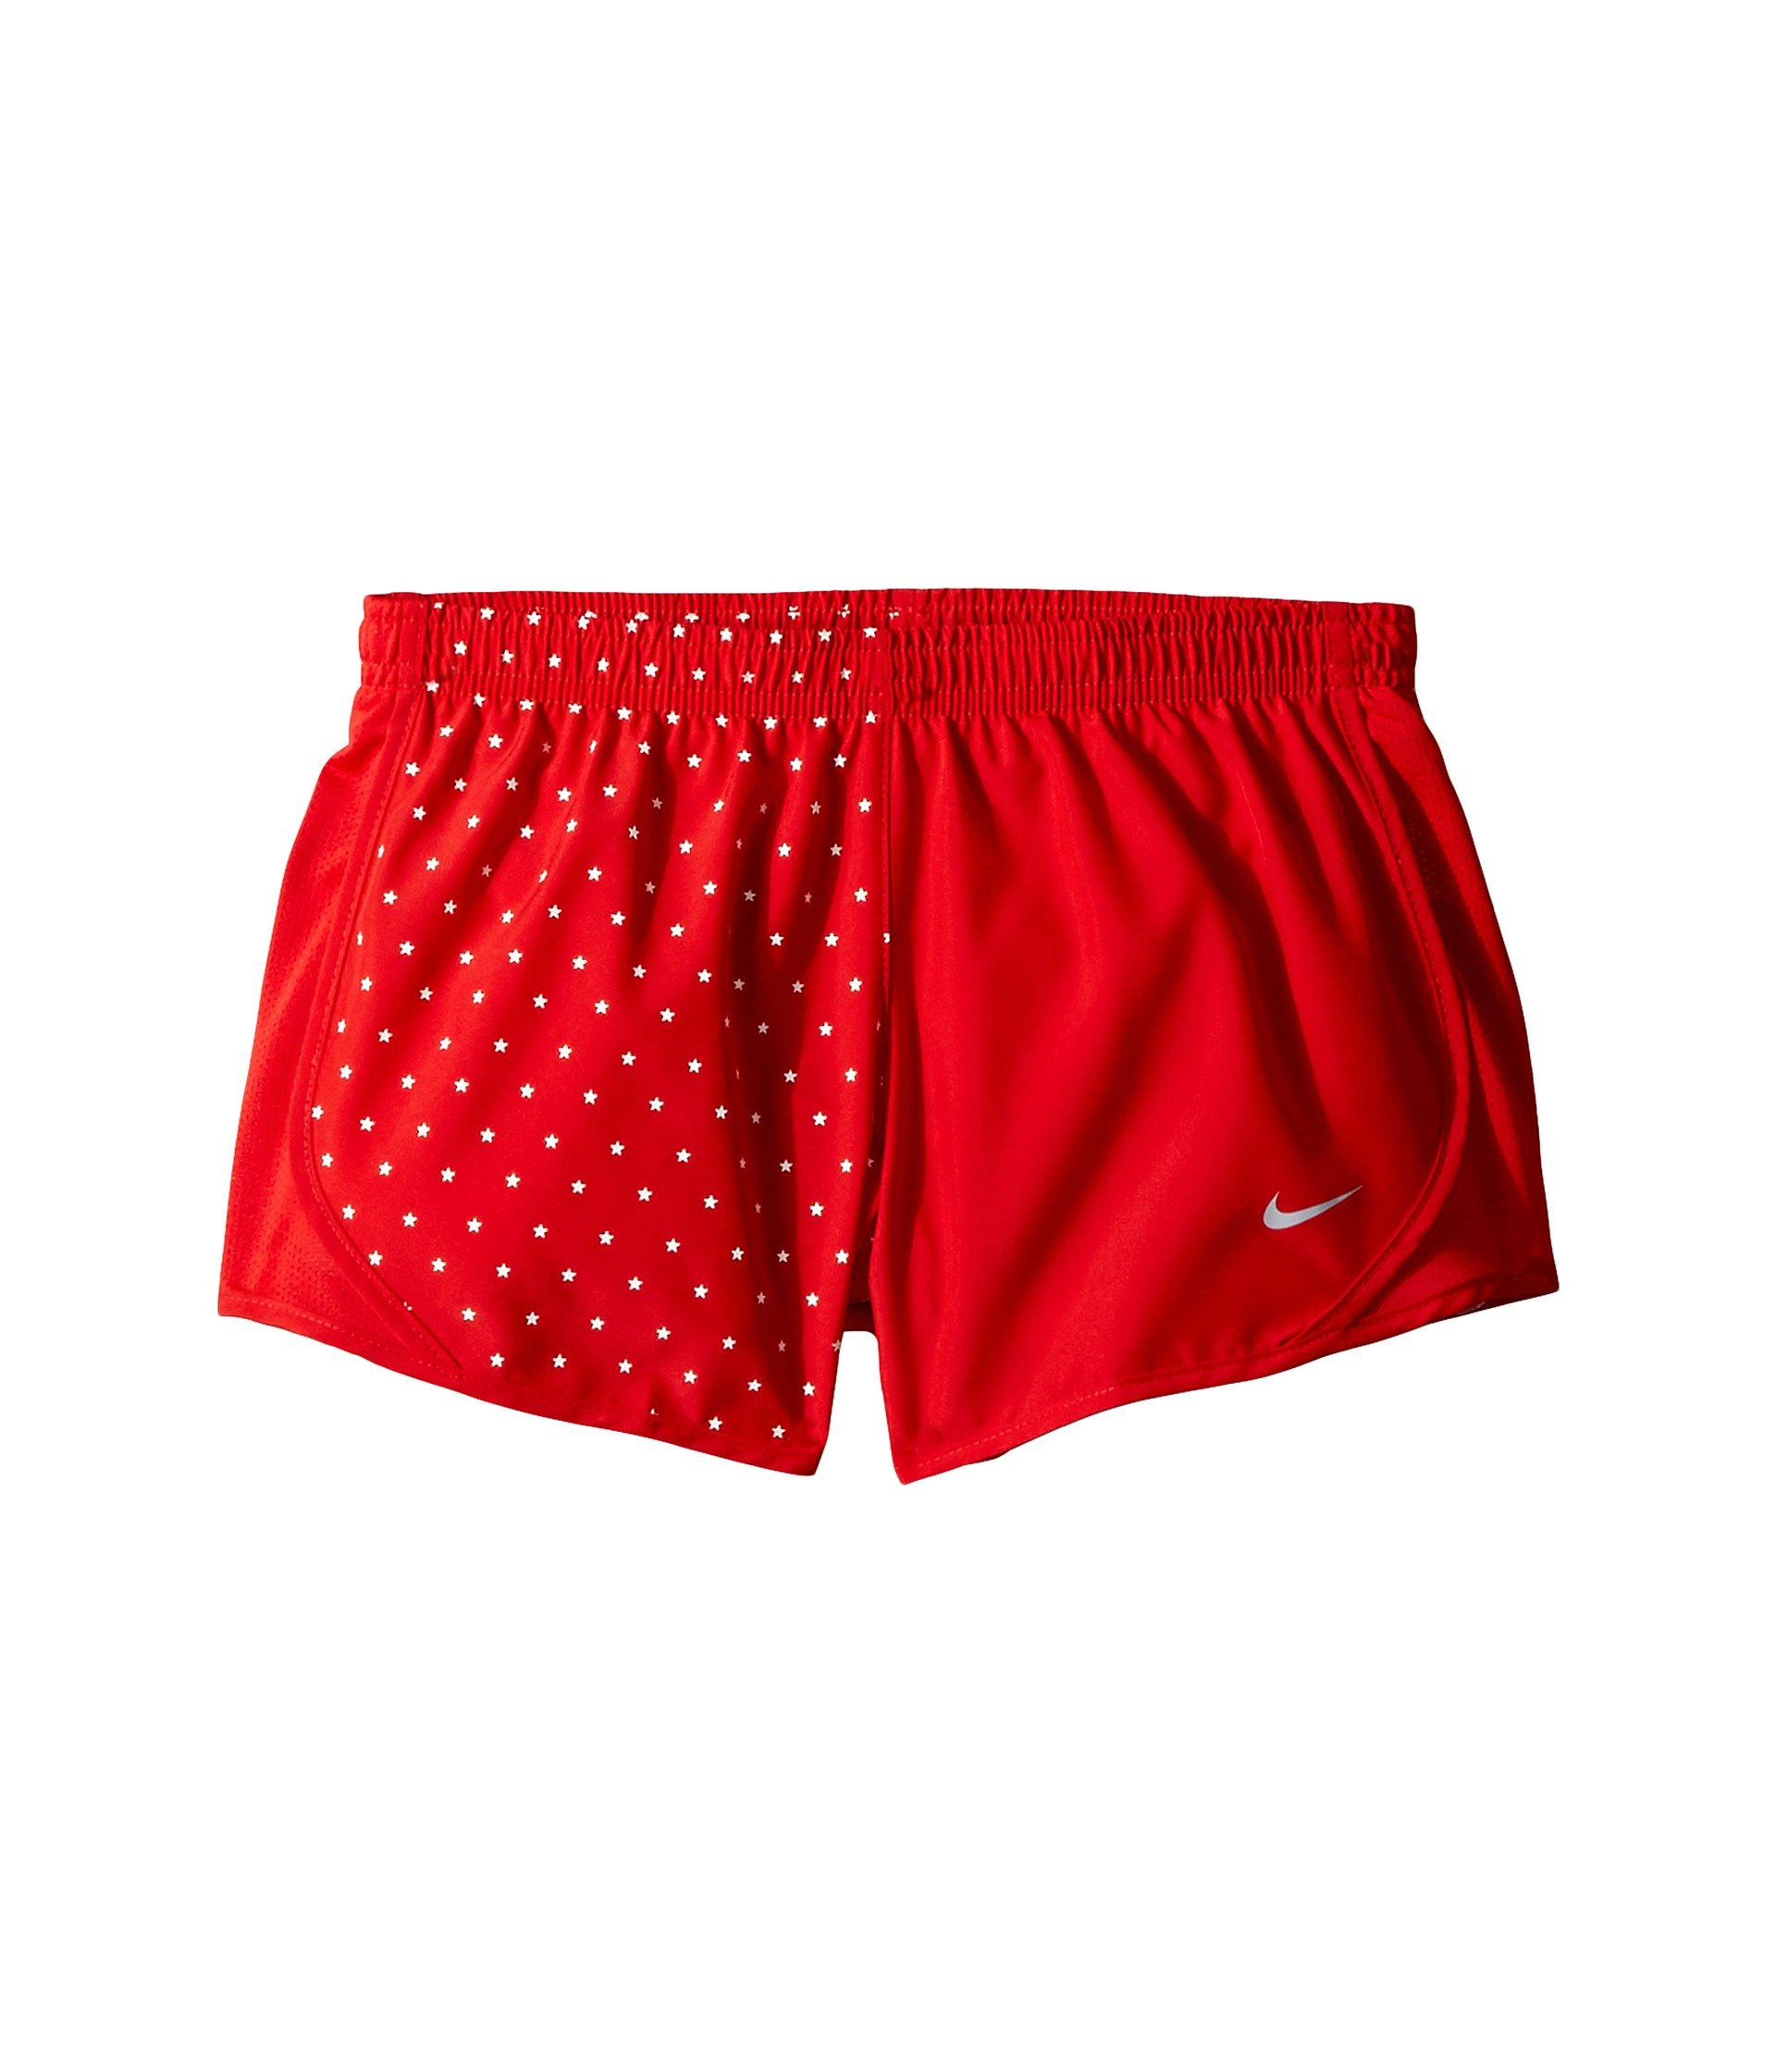 Nike Girl's Dry Tempo Stars Running Shorts (University Red, Large) by Nike